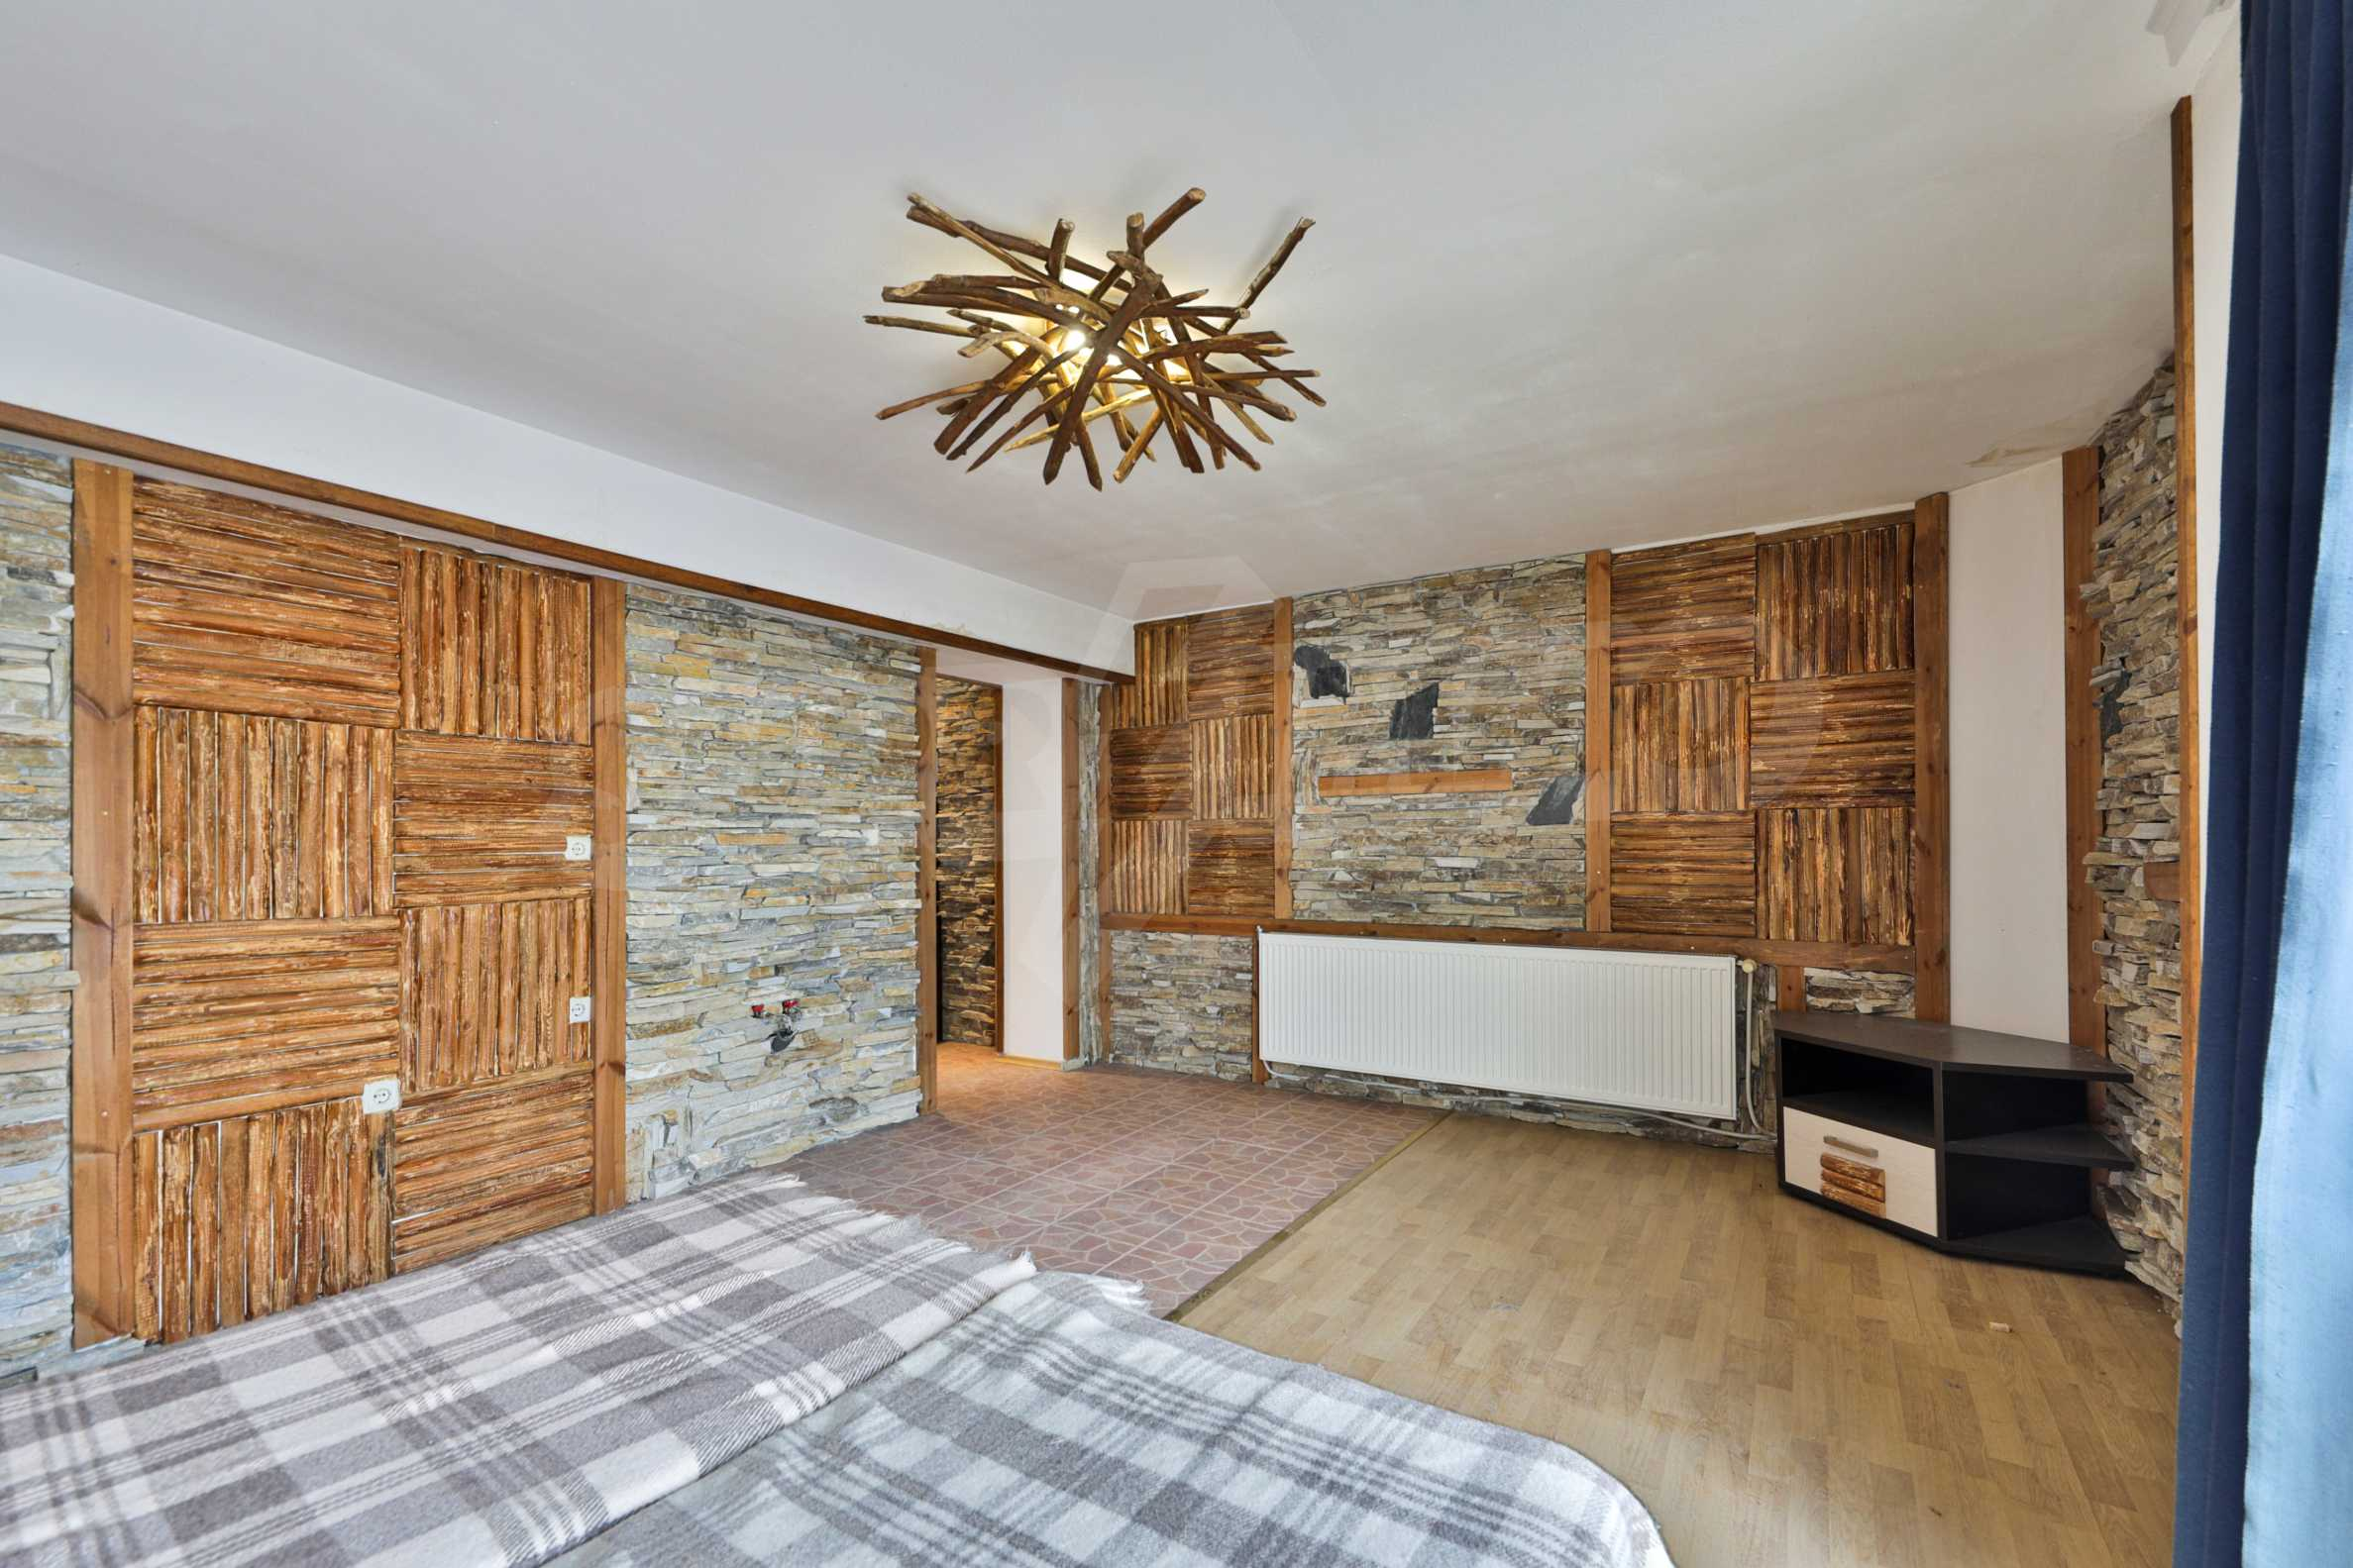 Pirin Apartments: Superb location right in the centre of Bansko 1